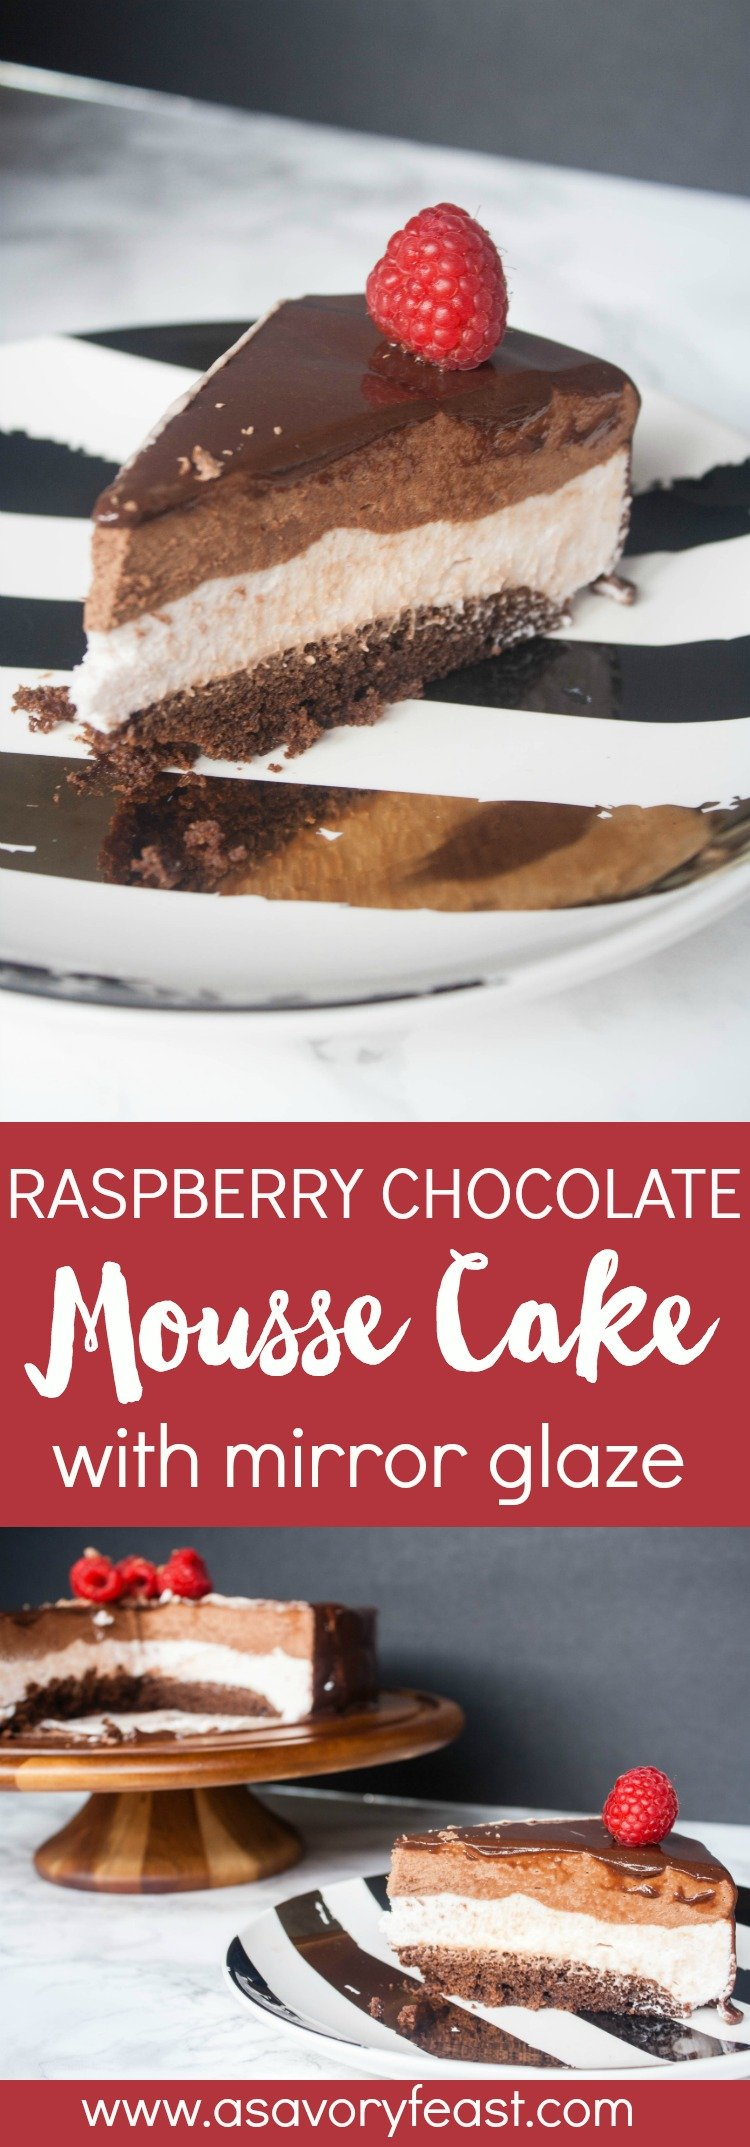 Want to WOW your friends? Make this Raspberry Chocolate Mousse Cake with Mirror Glaze! This triple layered cake starts with a from-scratch chocolate cake, followed by a fresh raspberry mousse and a chocolate mousse. Then the entire cake is covered with a gorgeous mirror glaze. This dessert is perfect for Valentine's Day, birthdays, anniversaries or just because!